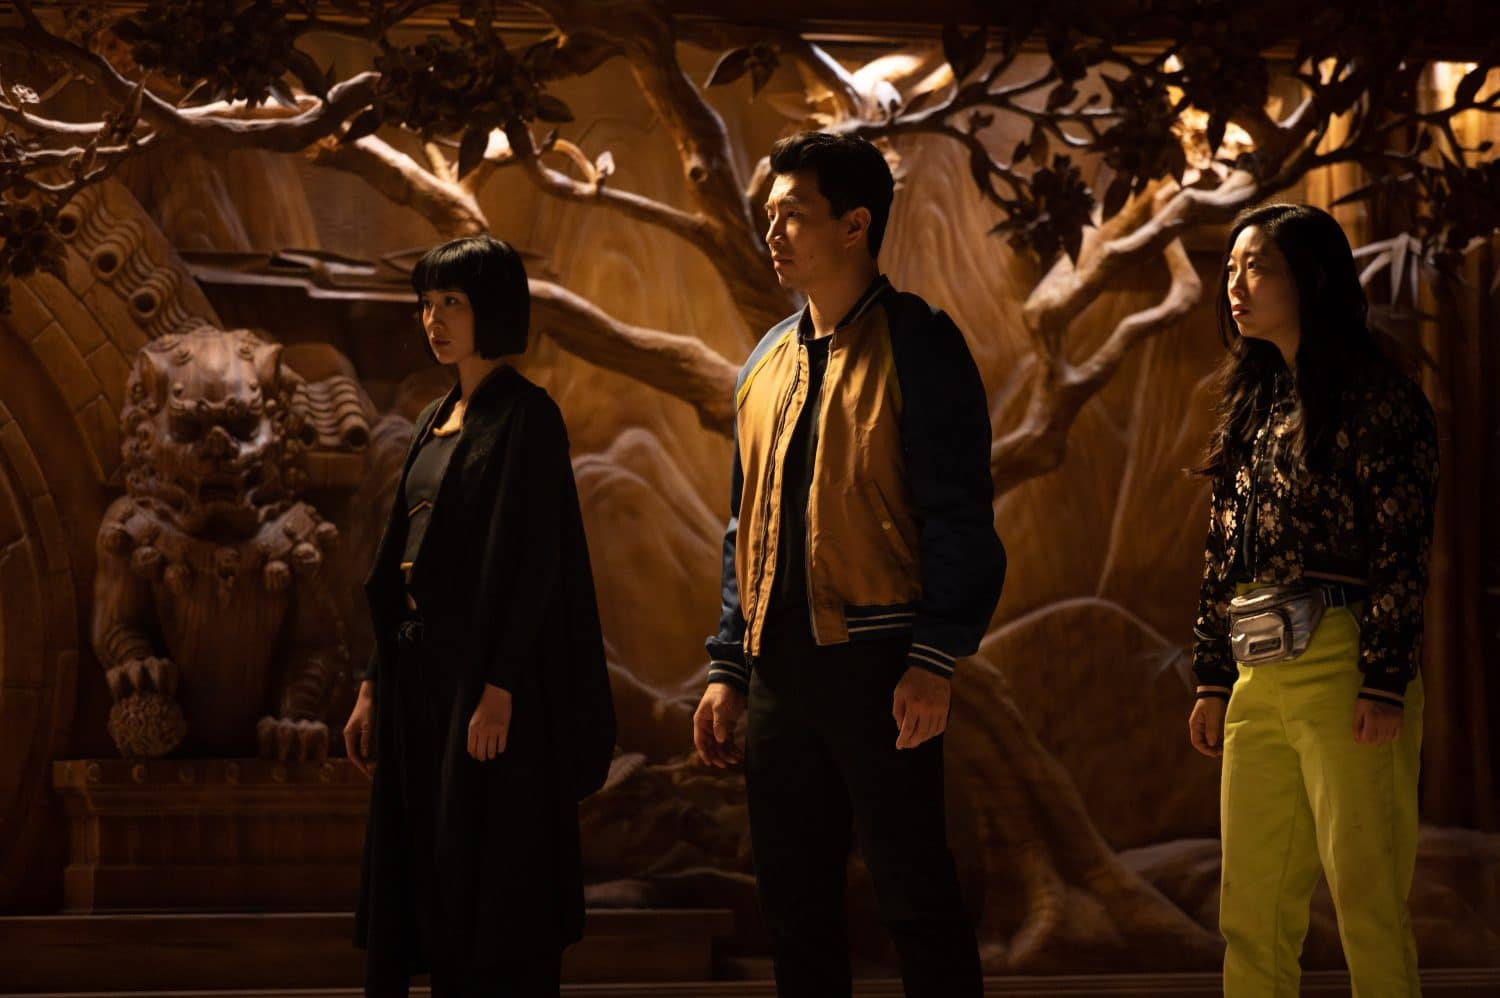 Shang-Chi and the Legend of the Ten Rings generational conflict Zoomer Boomer Y East West China father son Wenwu MCU Marvel Cinematic Universe